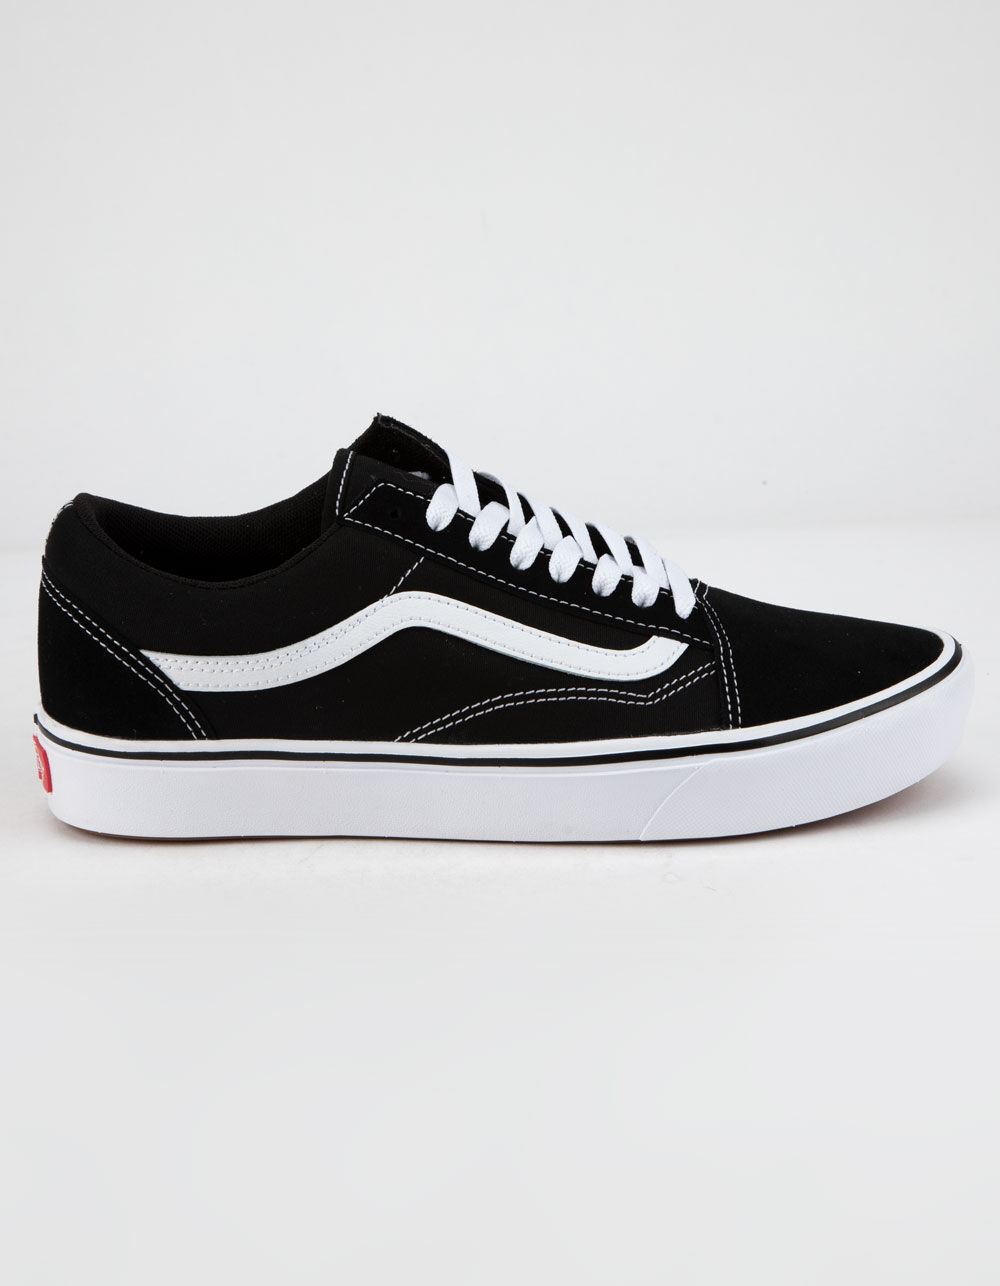 VANS ComfyCush Old Skool Black & True White Shoes